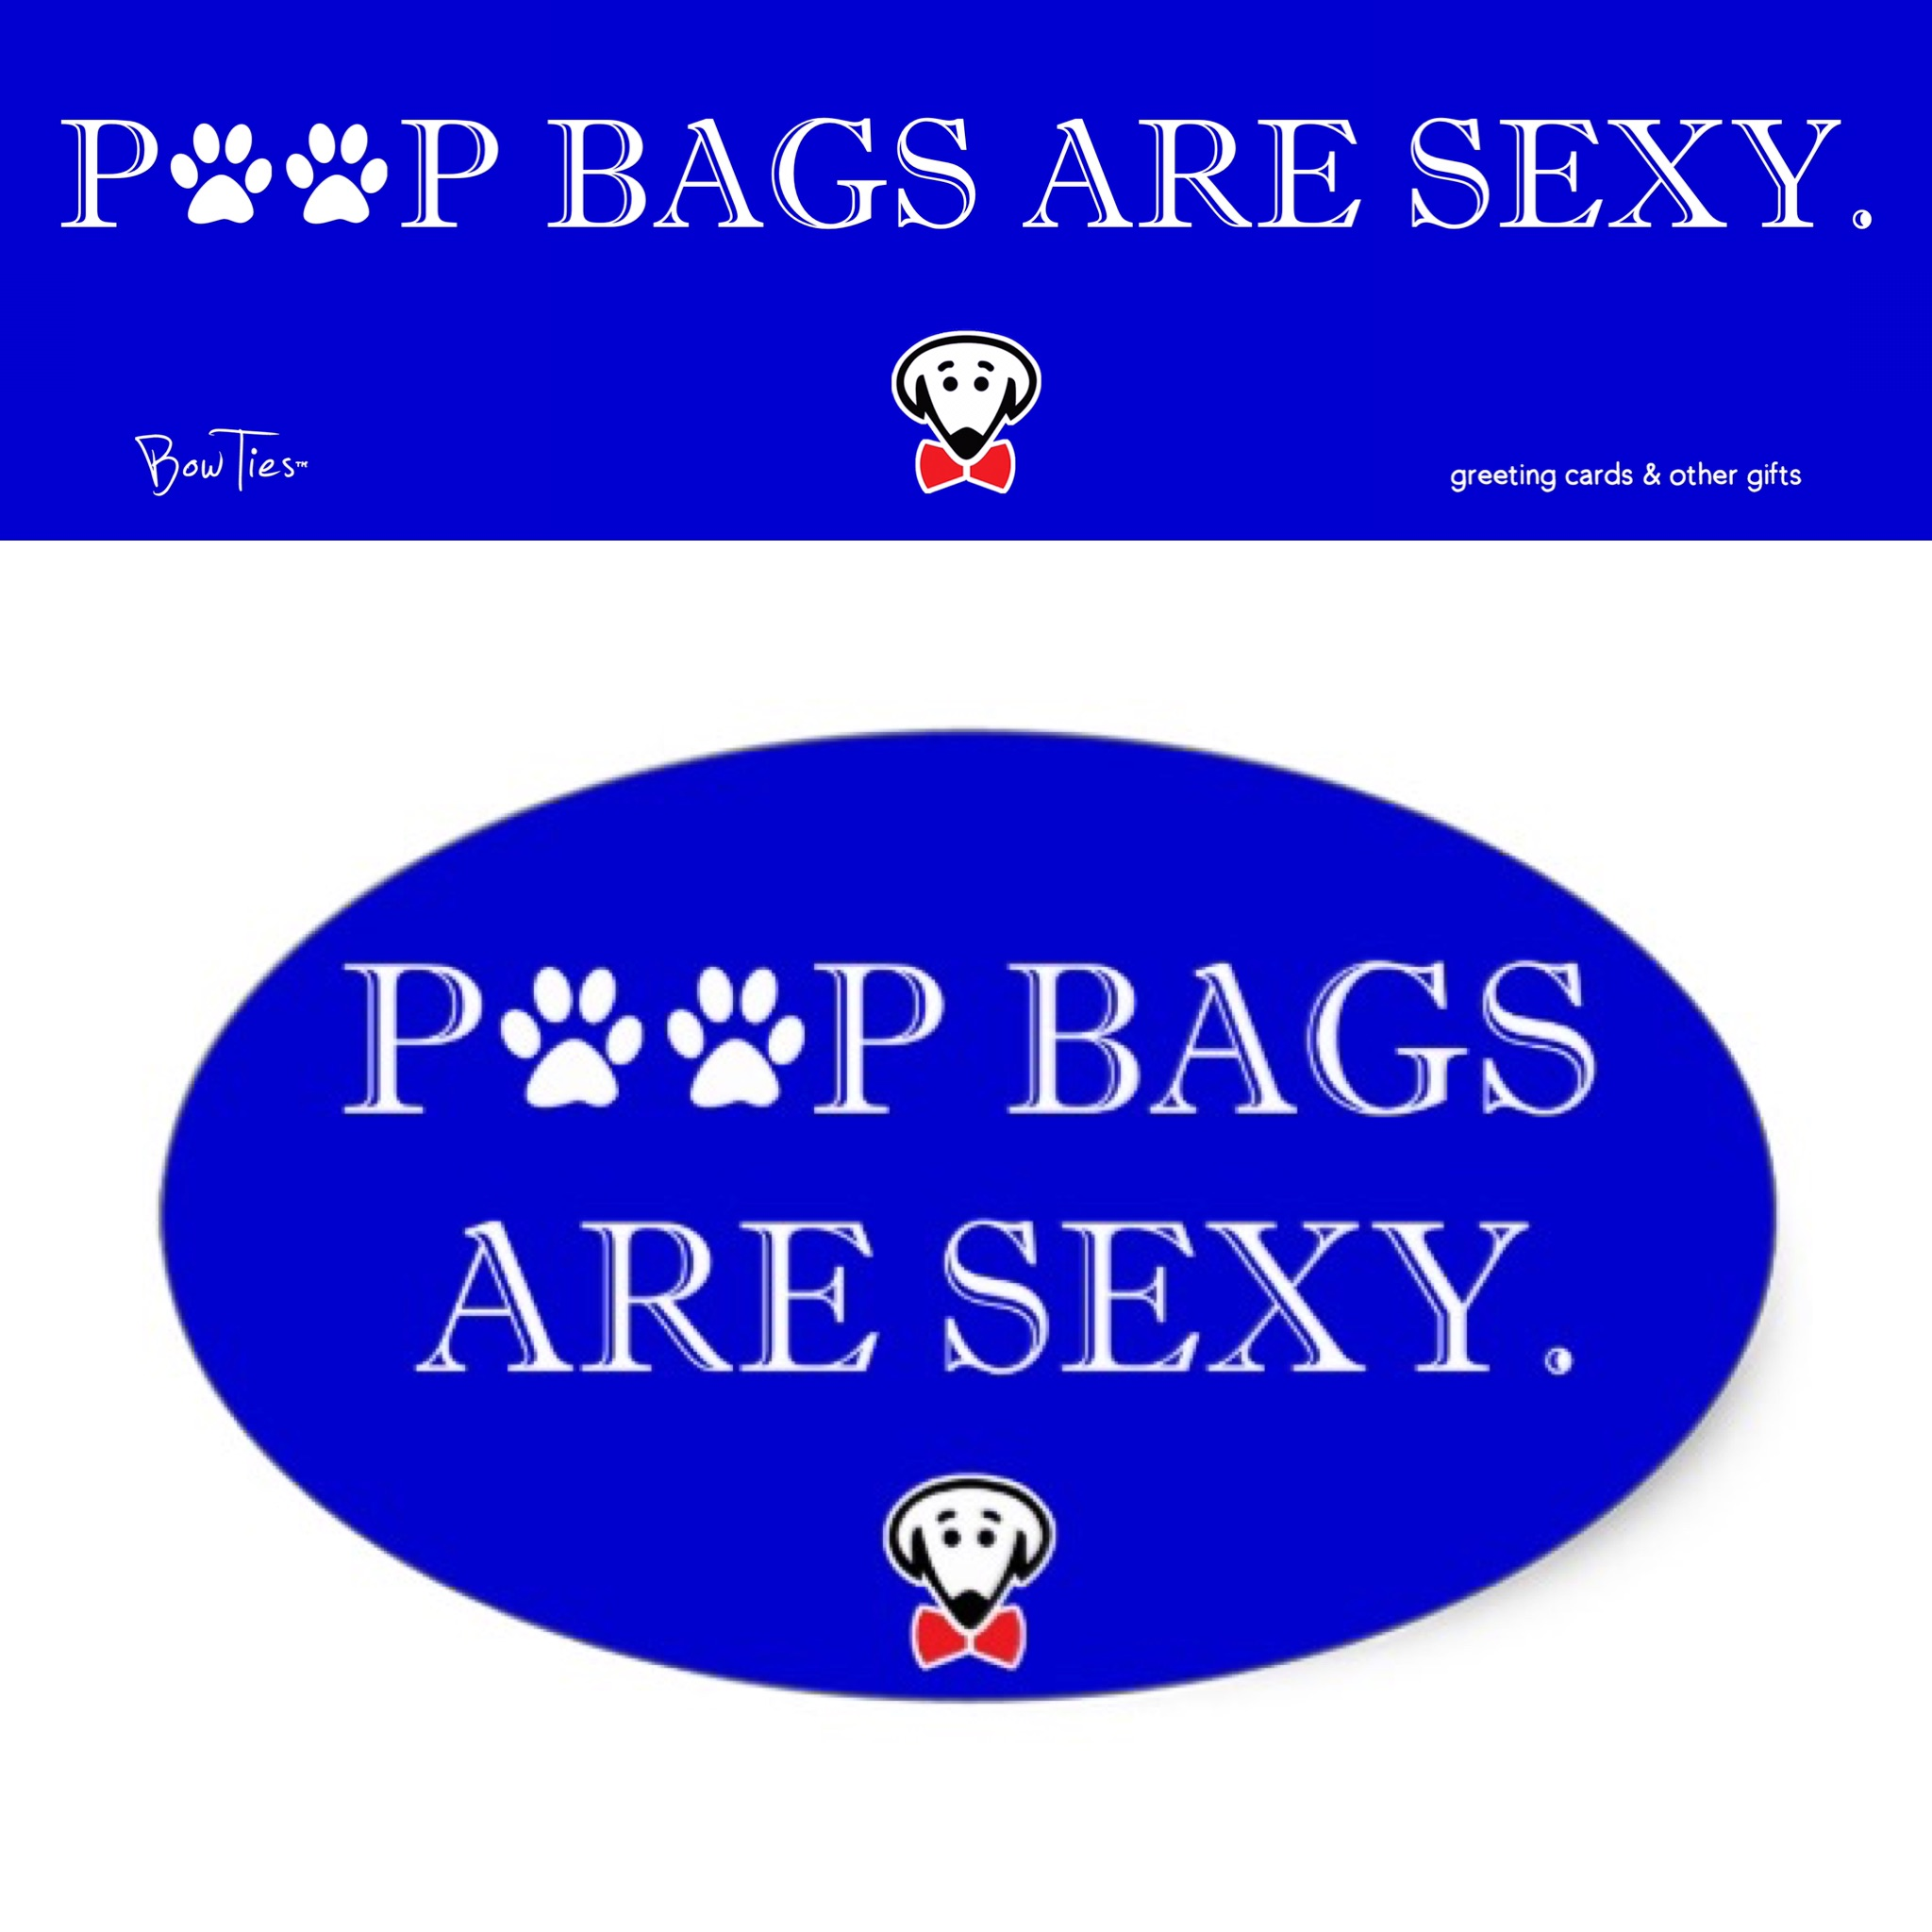 poop bags are sexy both